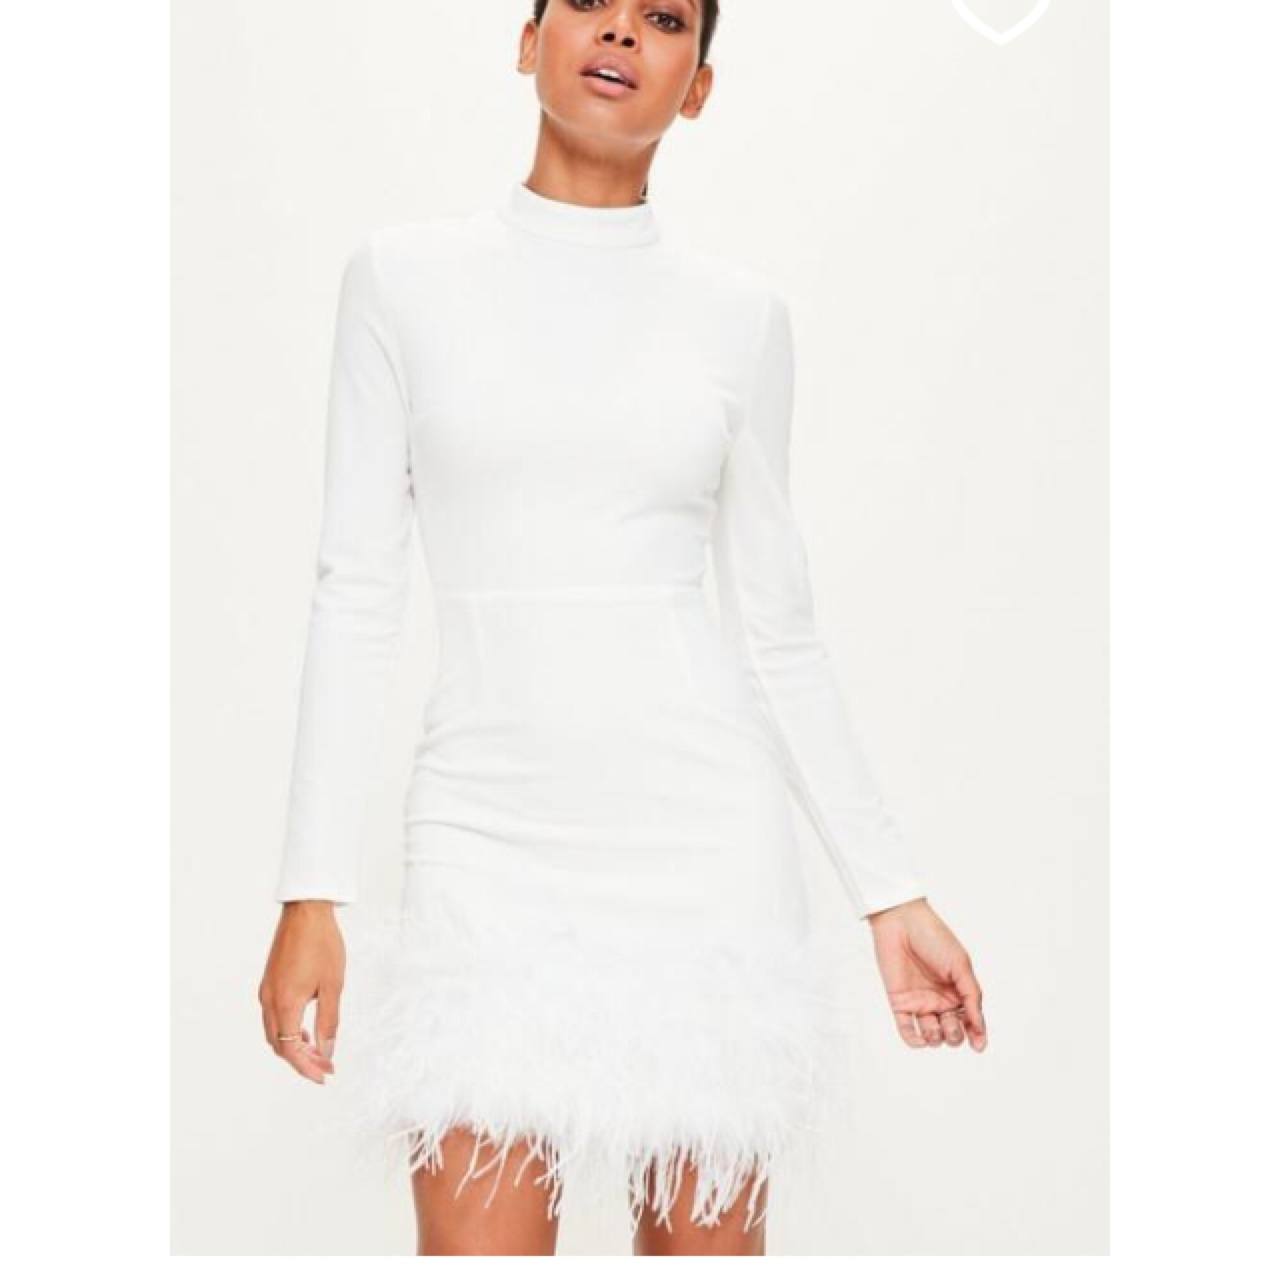 Missguided White Bodycon Dress by Depop